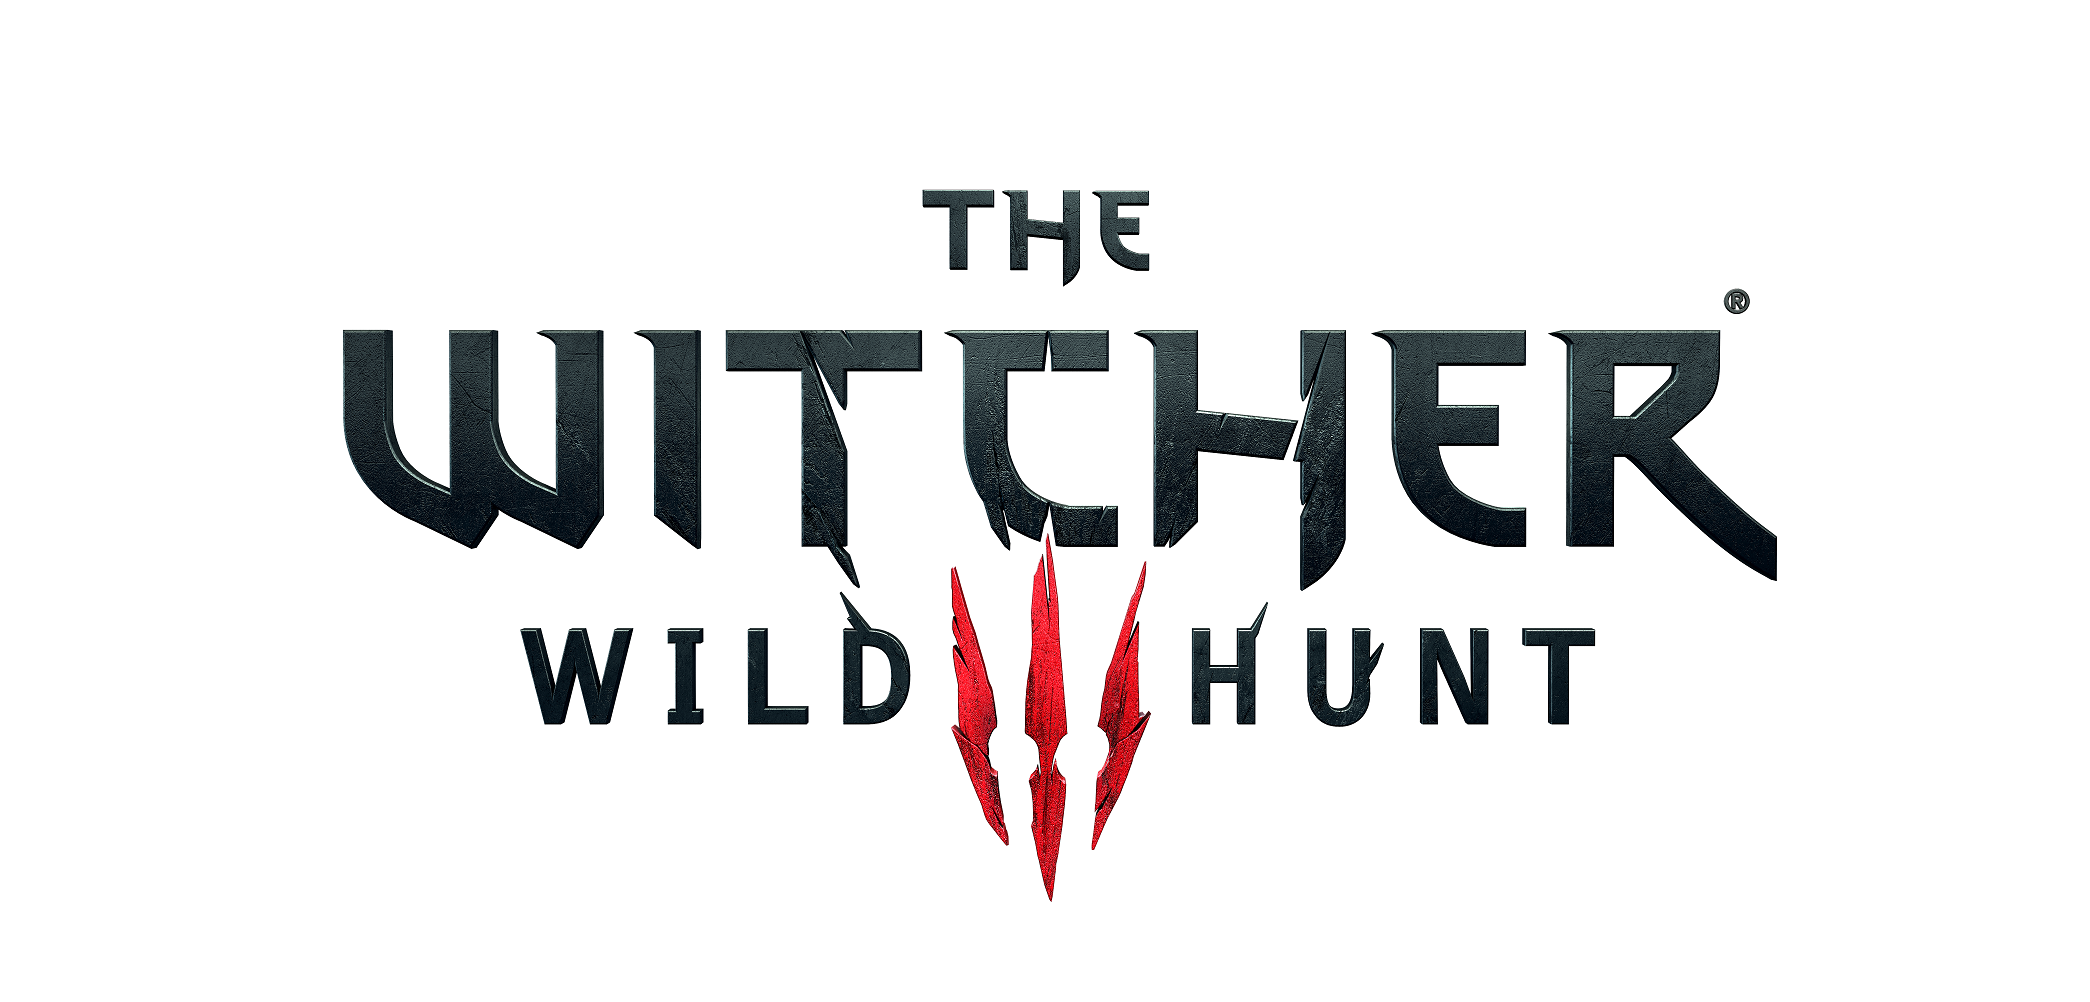 Recensione – The Witcher 3: Wild Hunt